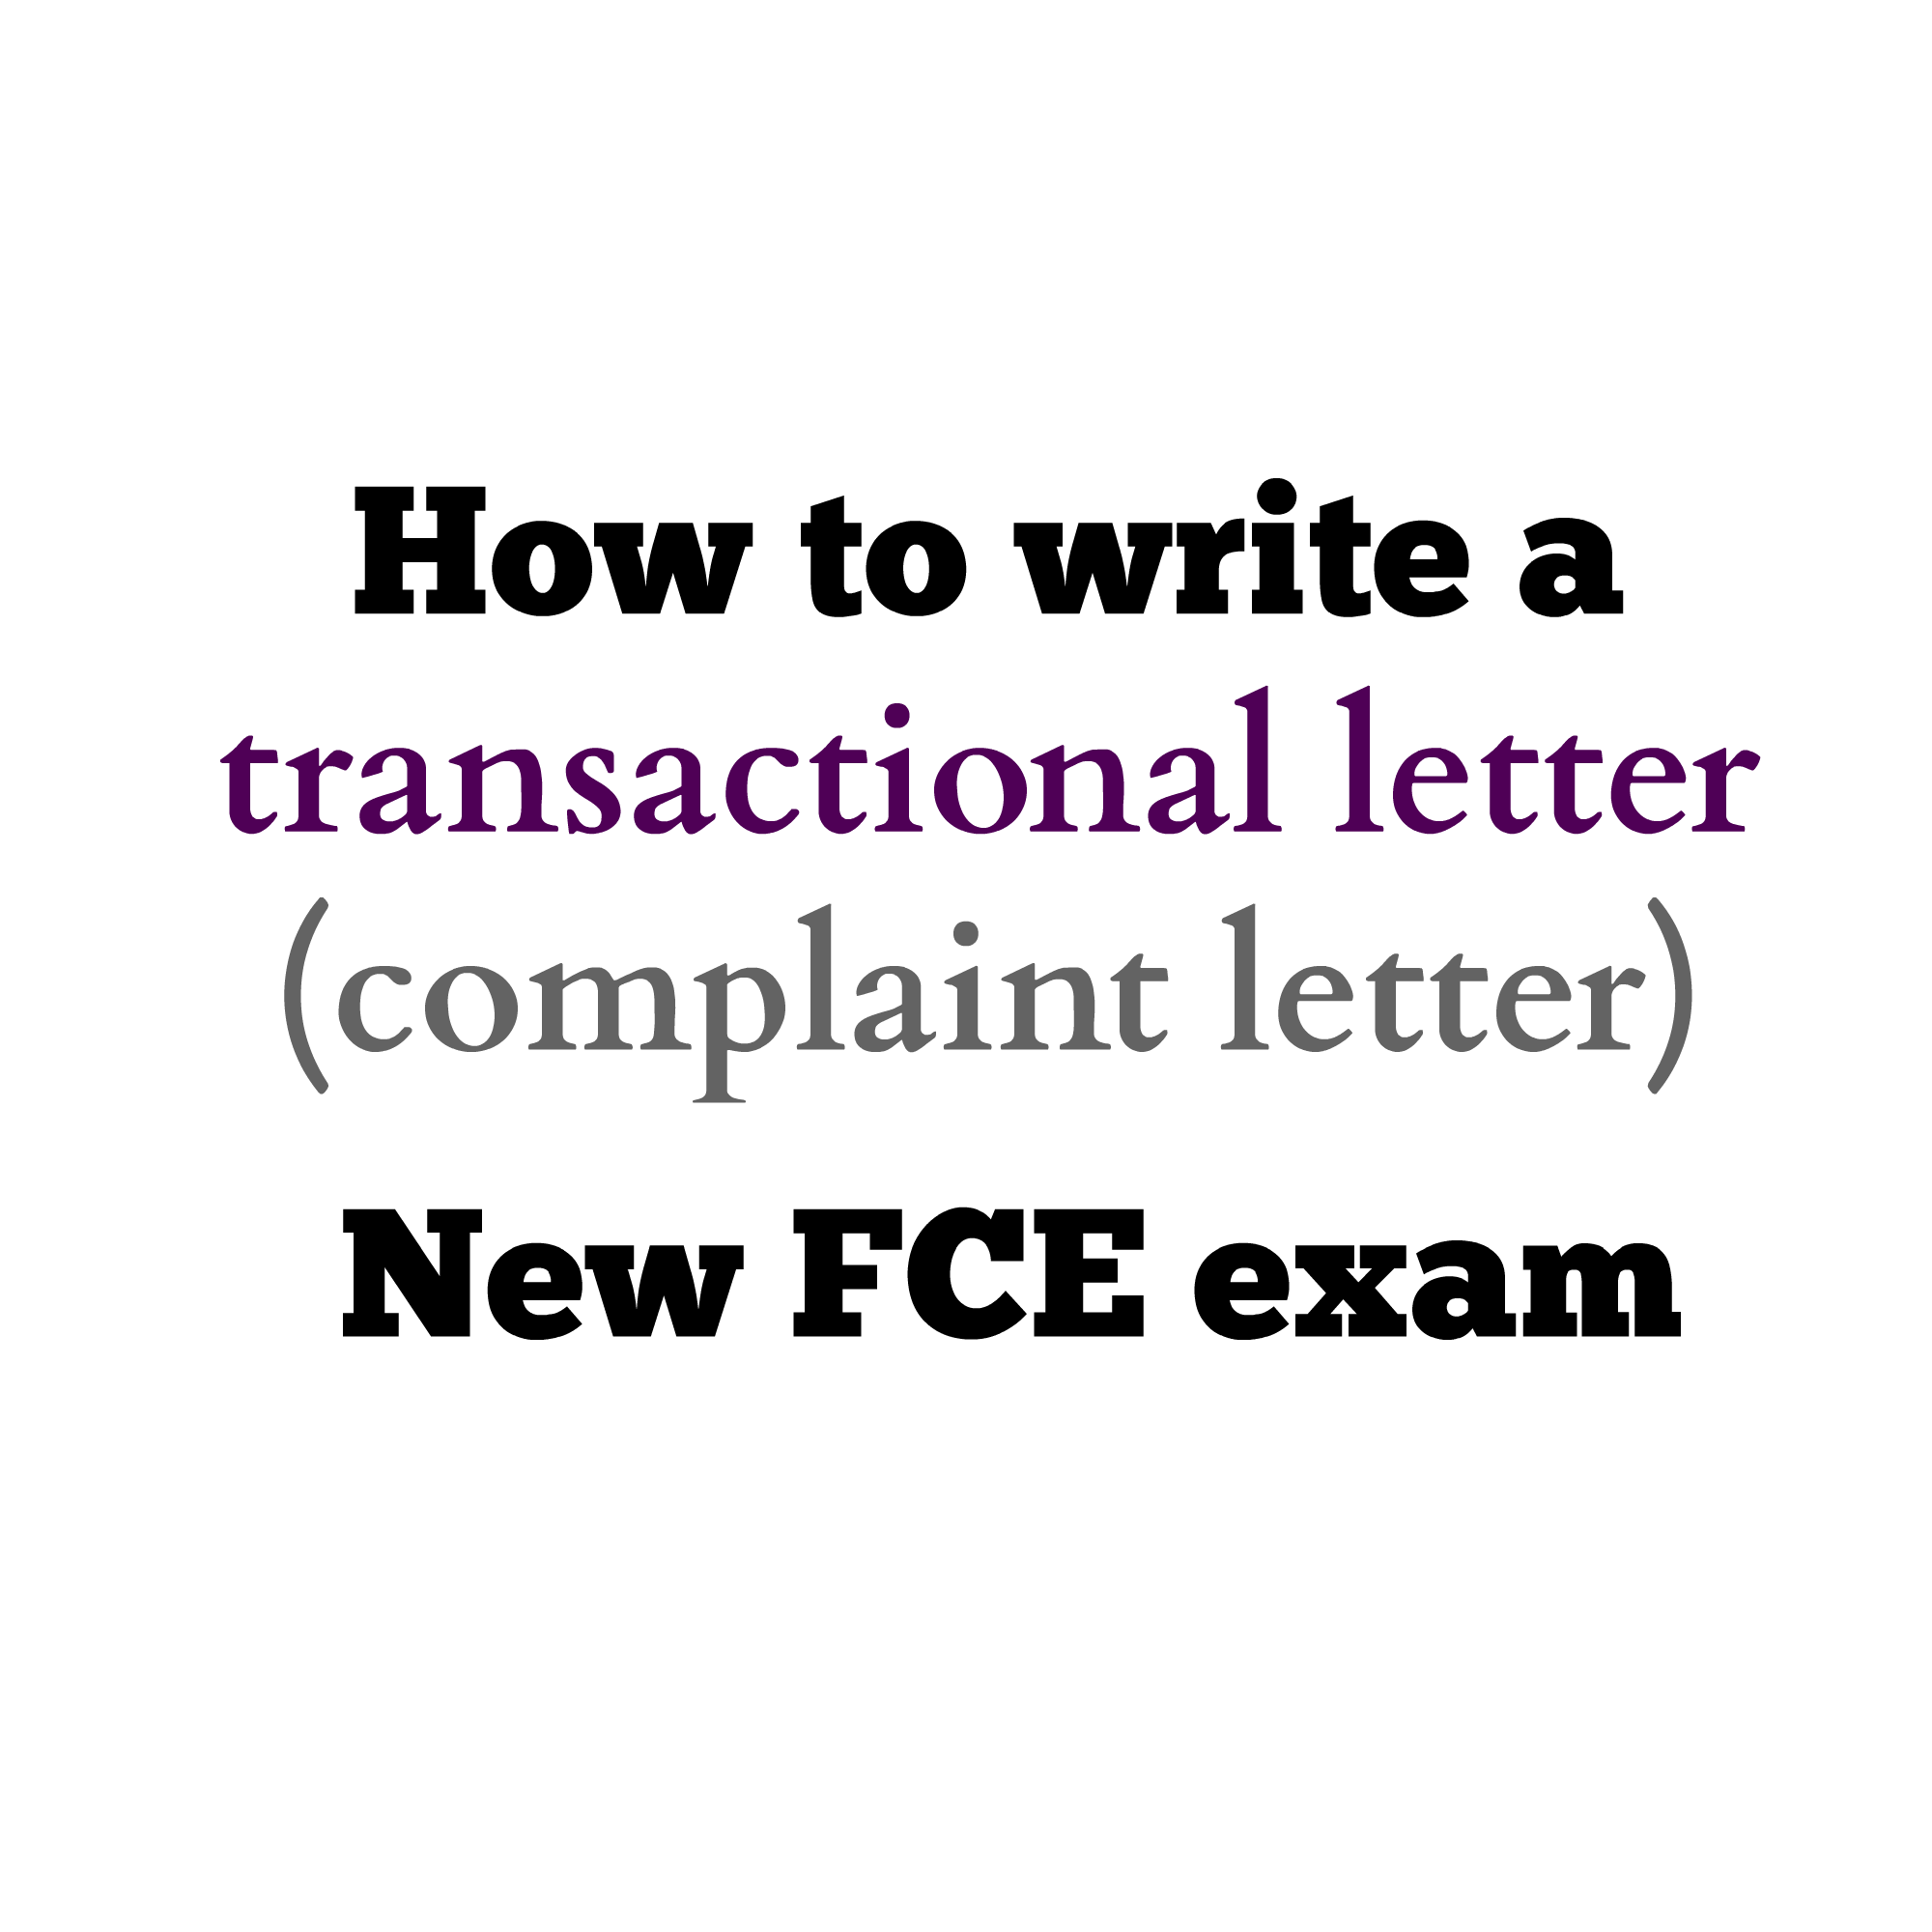 how to write a transactional letter introducing a request how to write a transactional letter introducing a request complaint letter for new fce exam english exam help